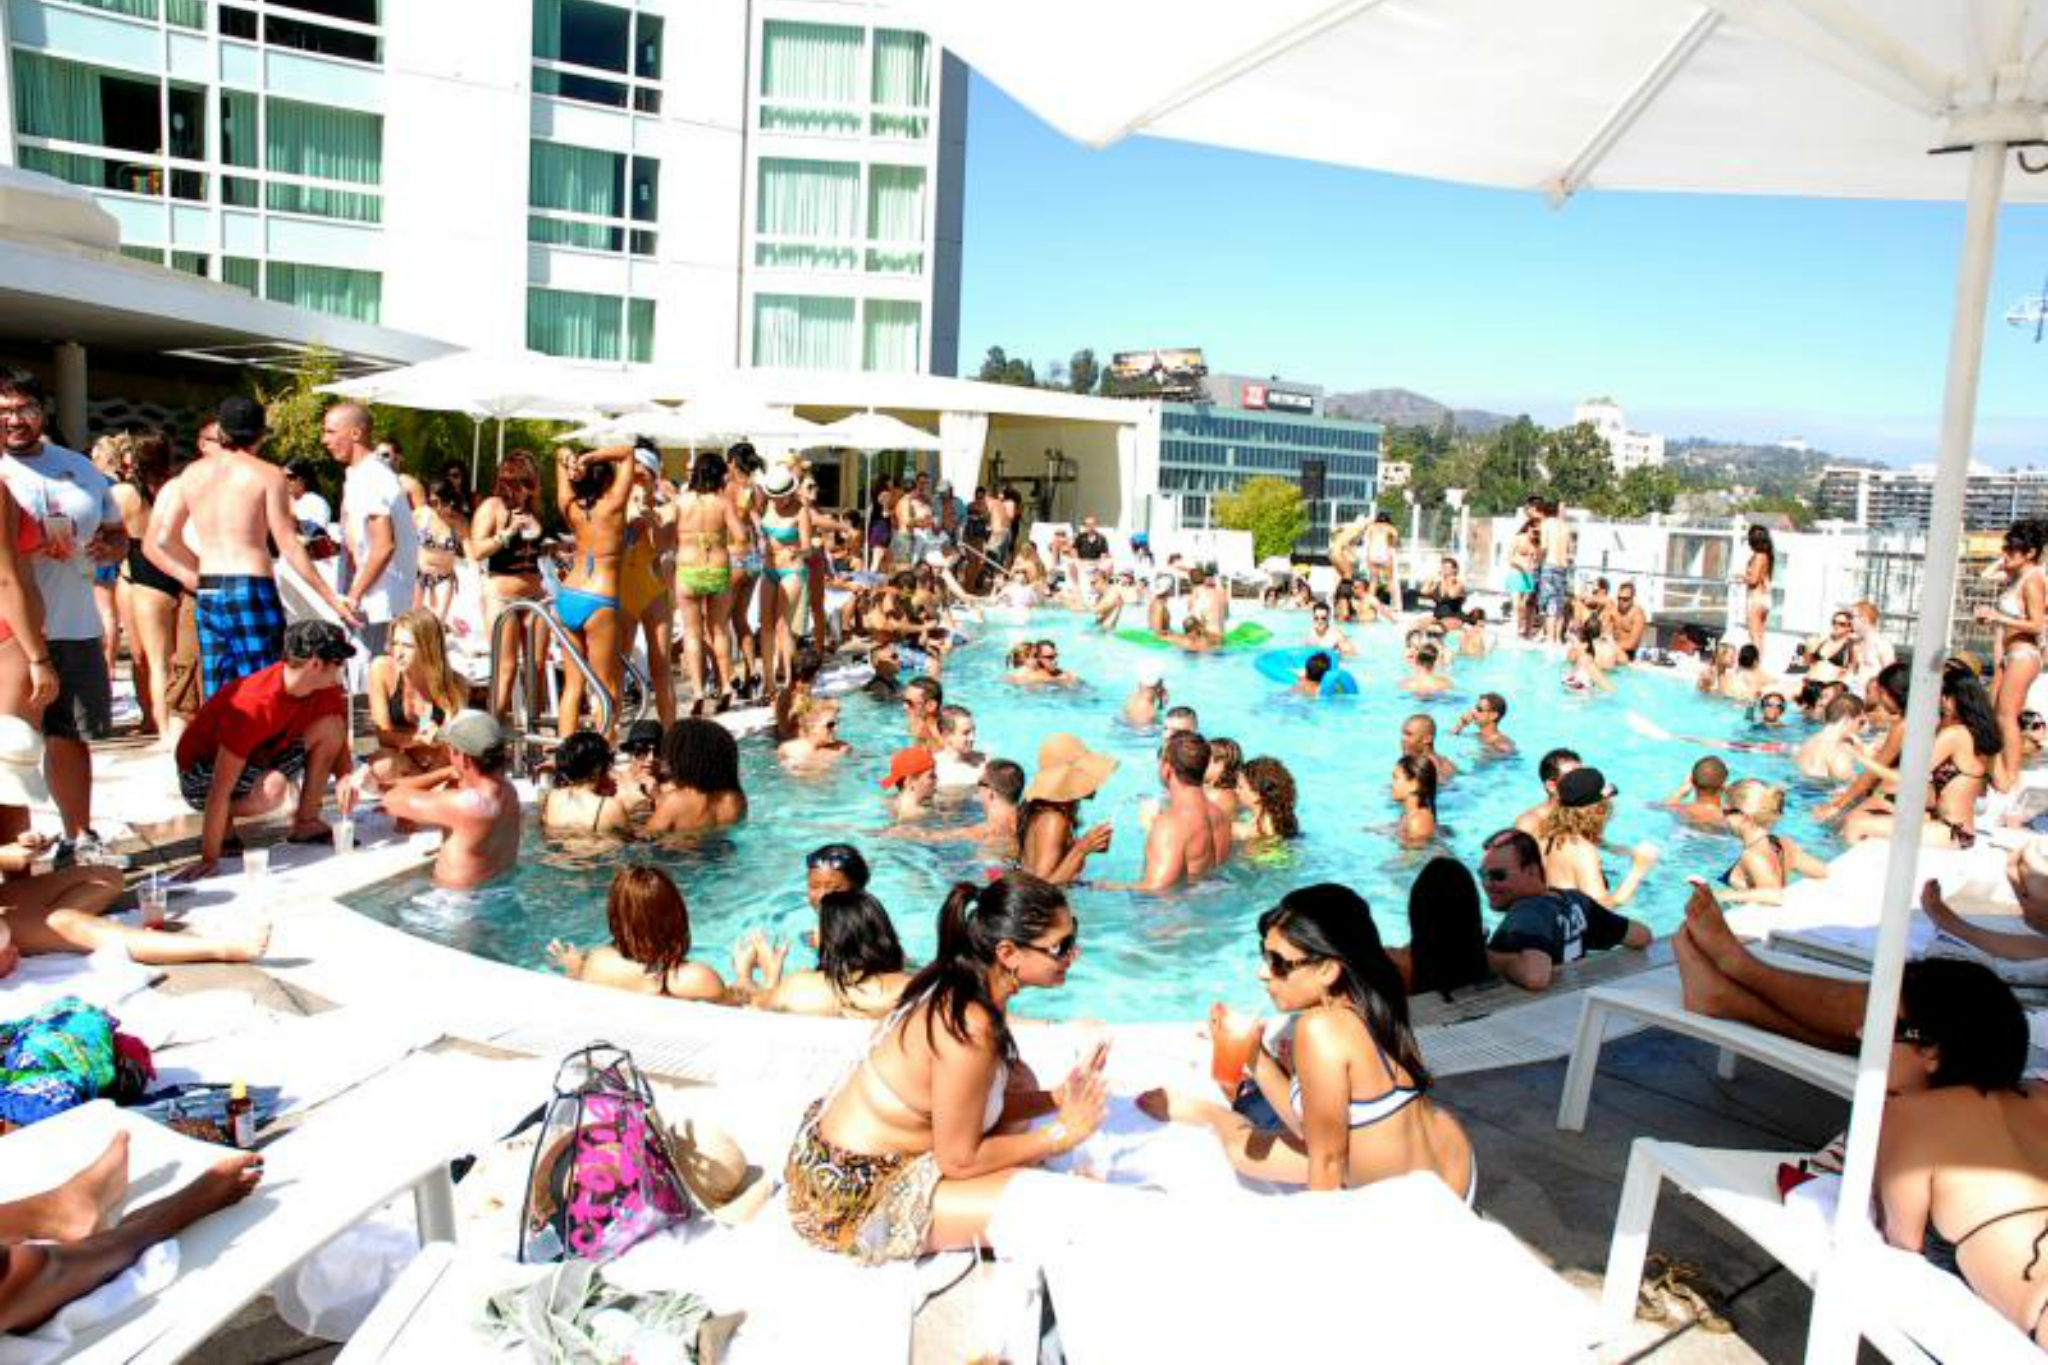 What are the best la pool parties in 2015 discotech - Best swimming pools in los angeles ...